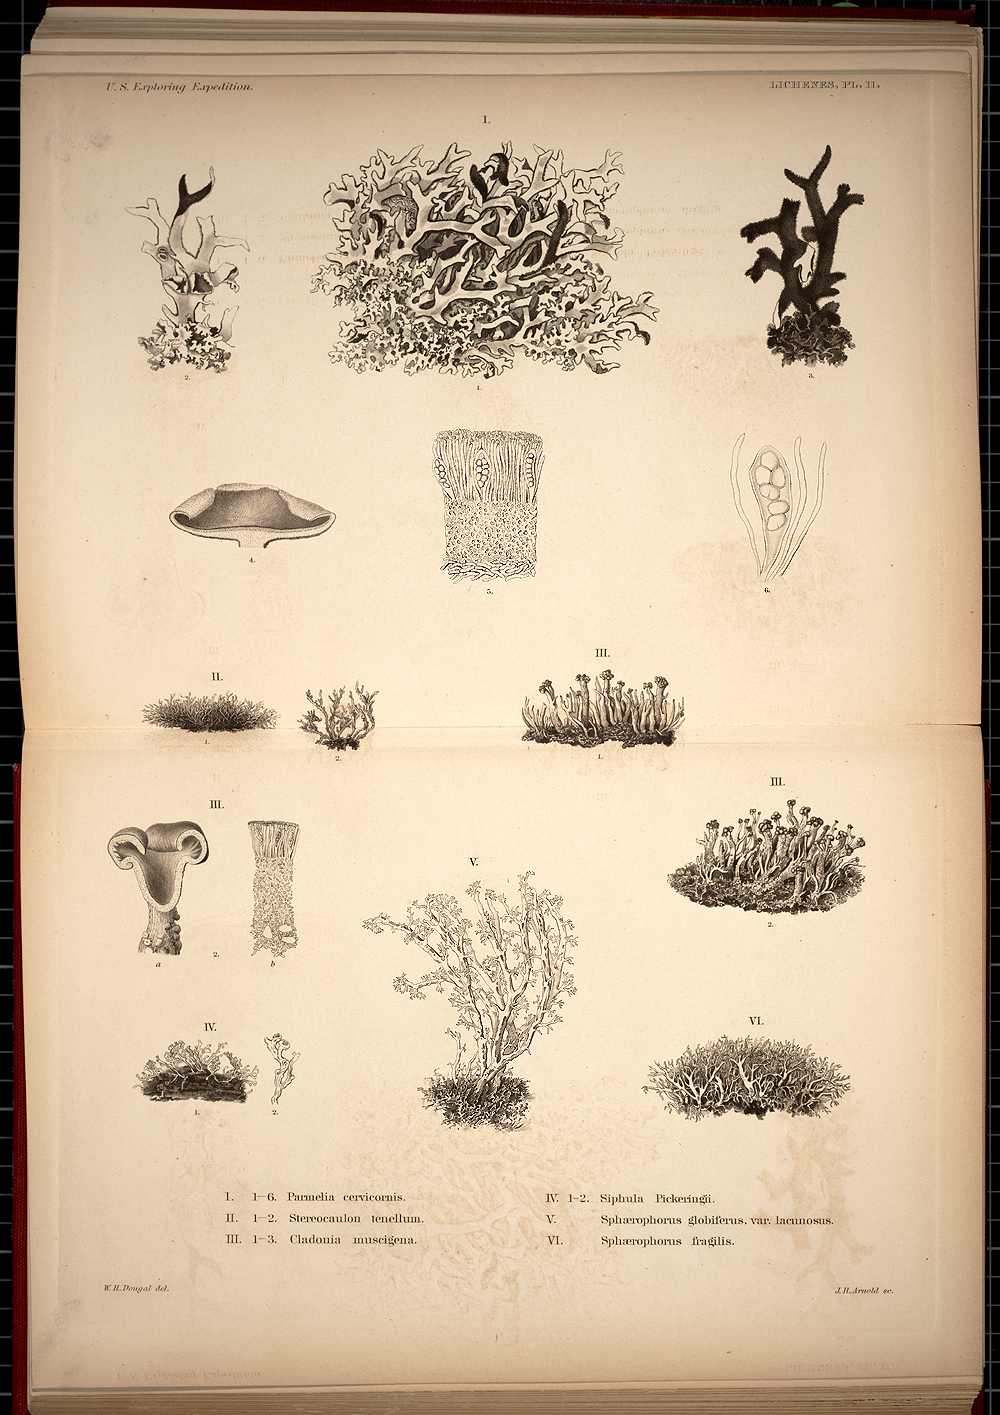 Lichenes, Plate II,  Image number:SIL19-28-021